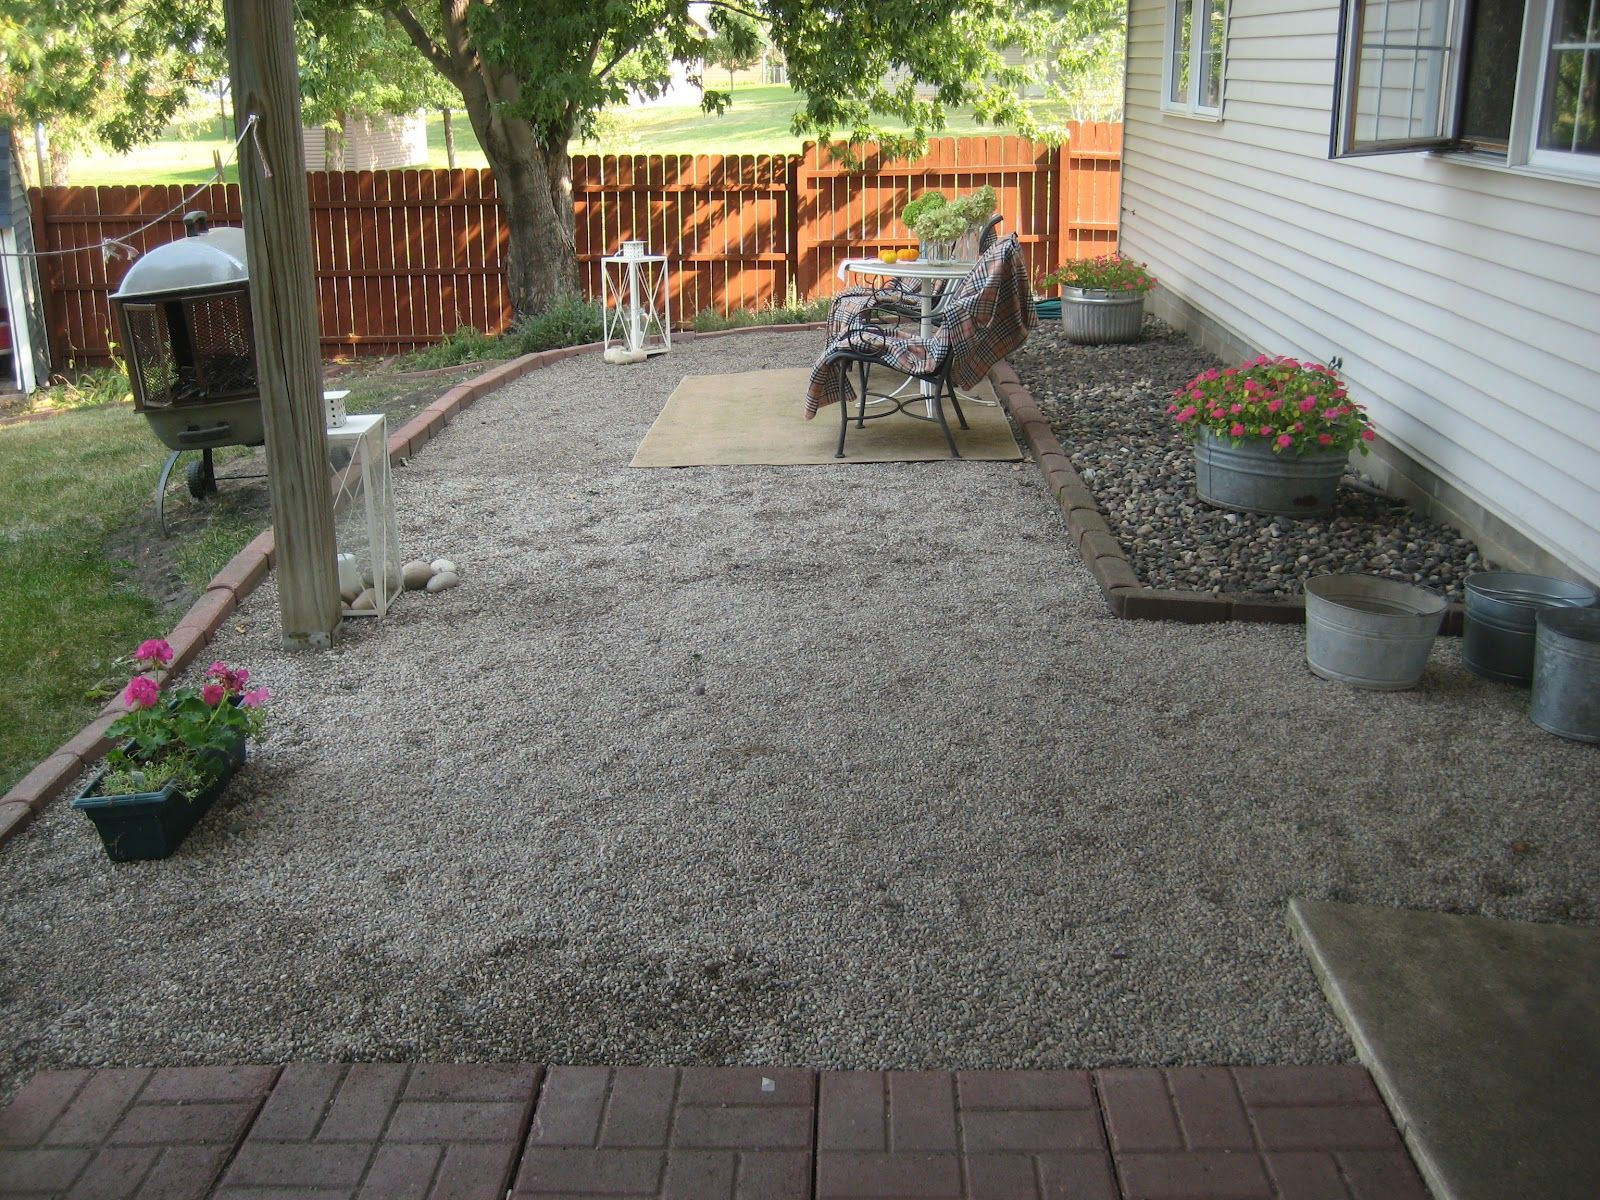 Crushed Limestone Patio Ideas Patio Home Improvement Idea Pp0bowel7g Patio Landscaping Pebble Patio Pea Gravel Patio